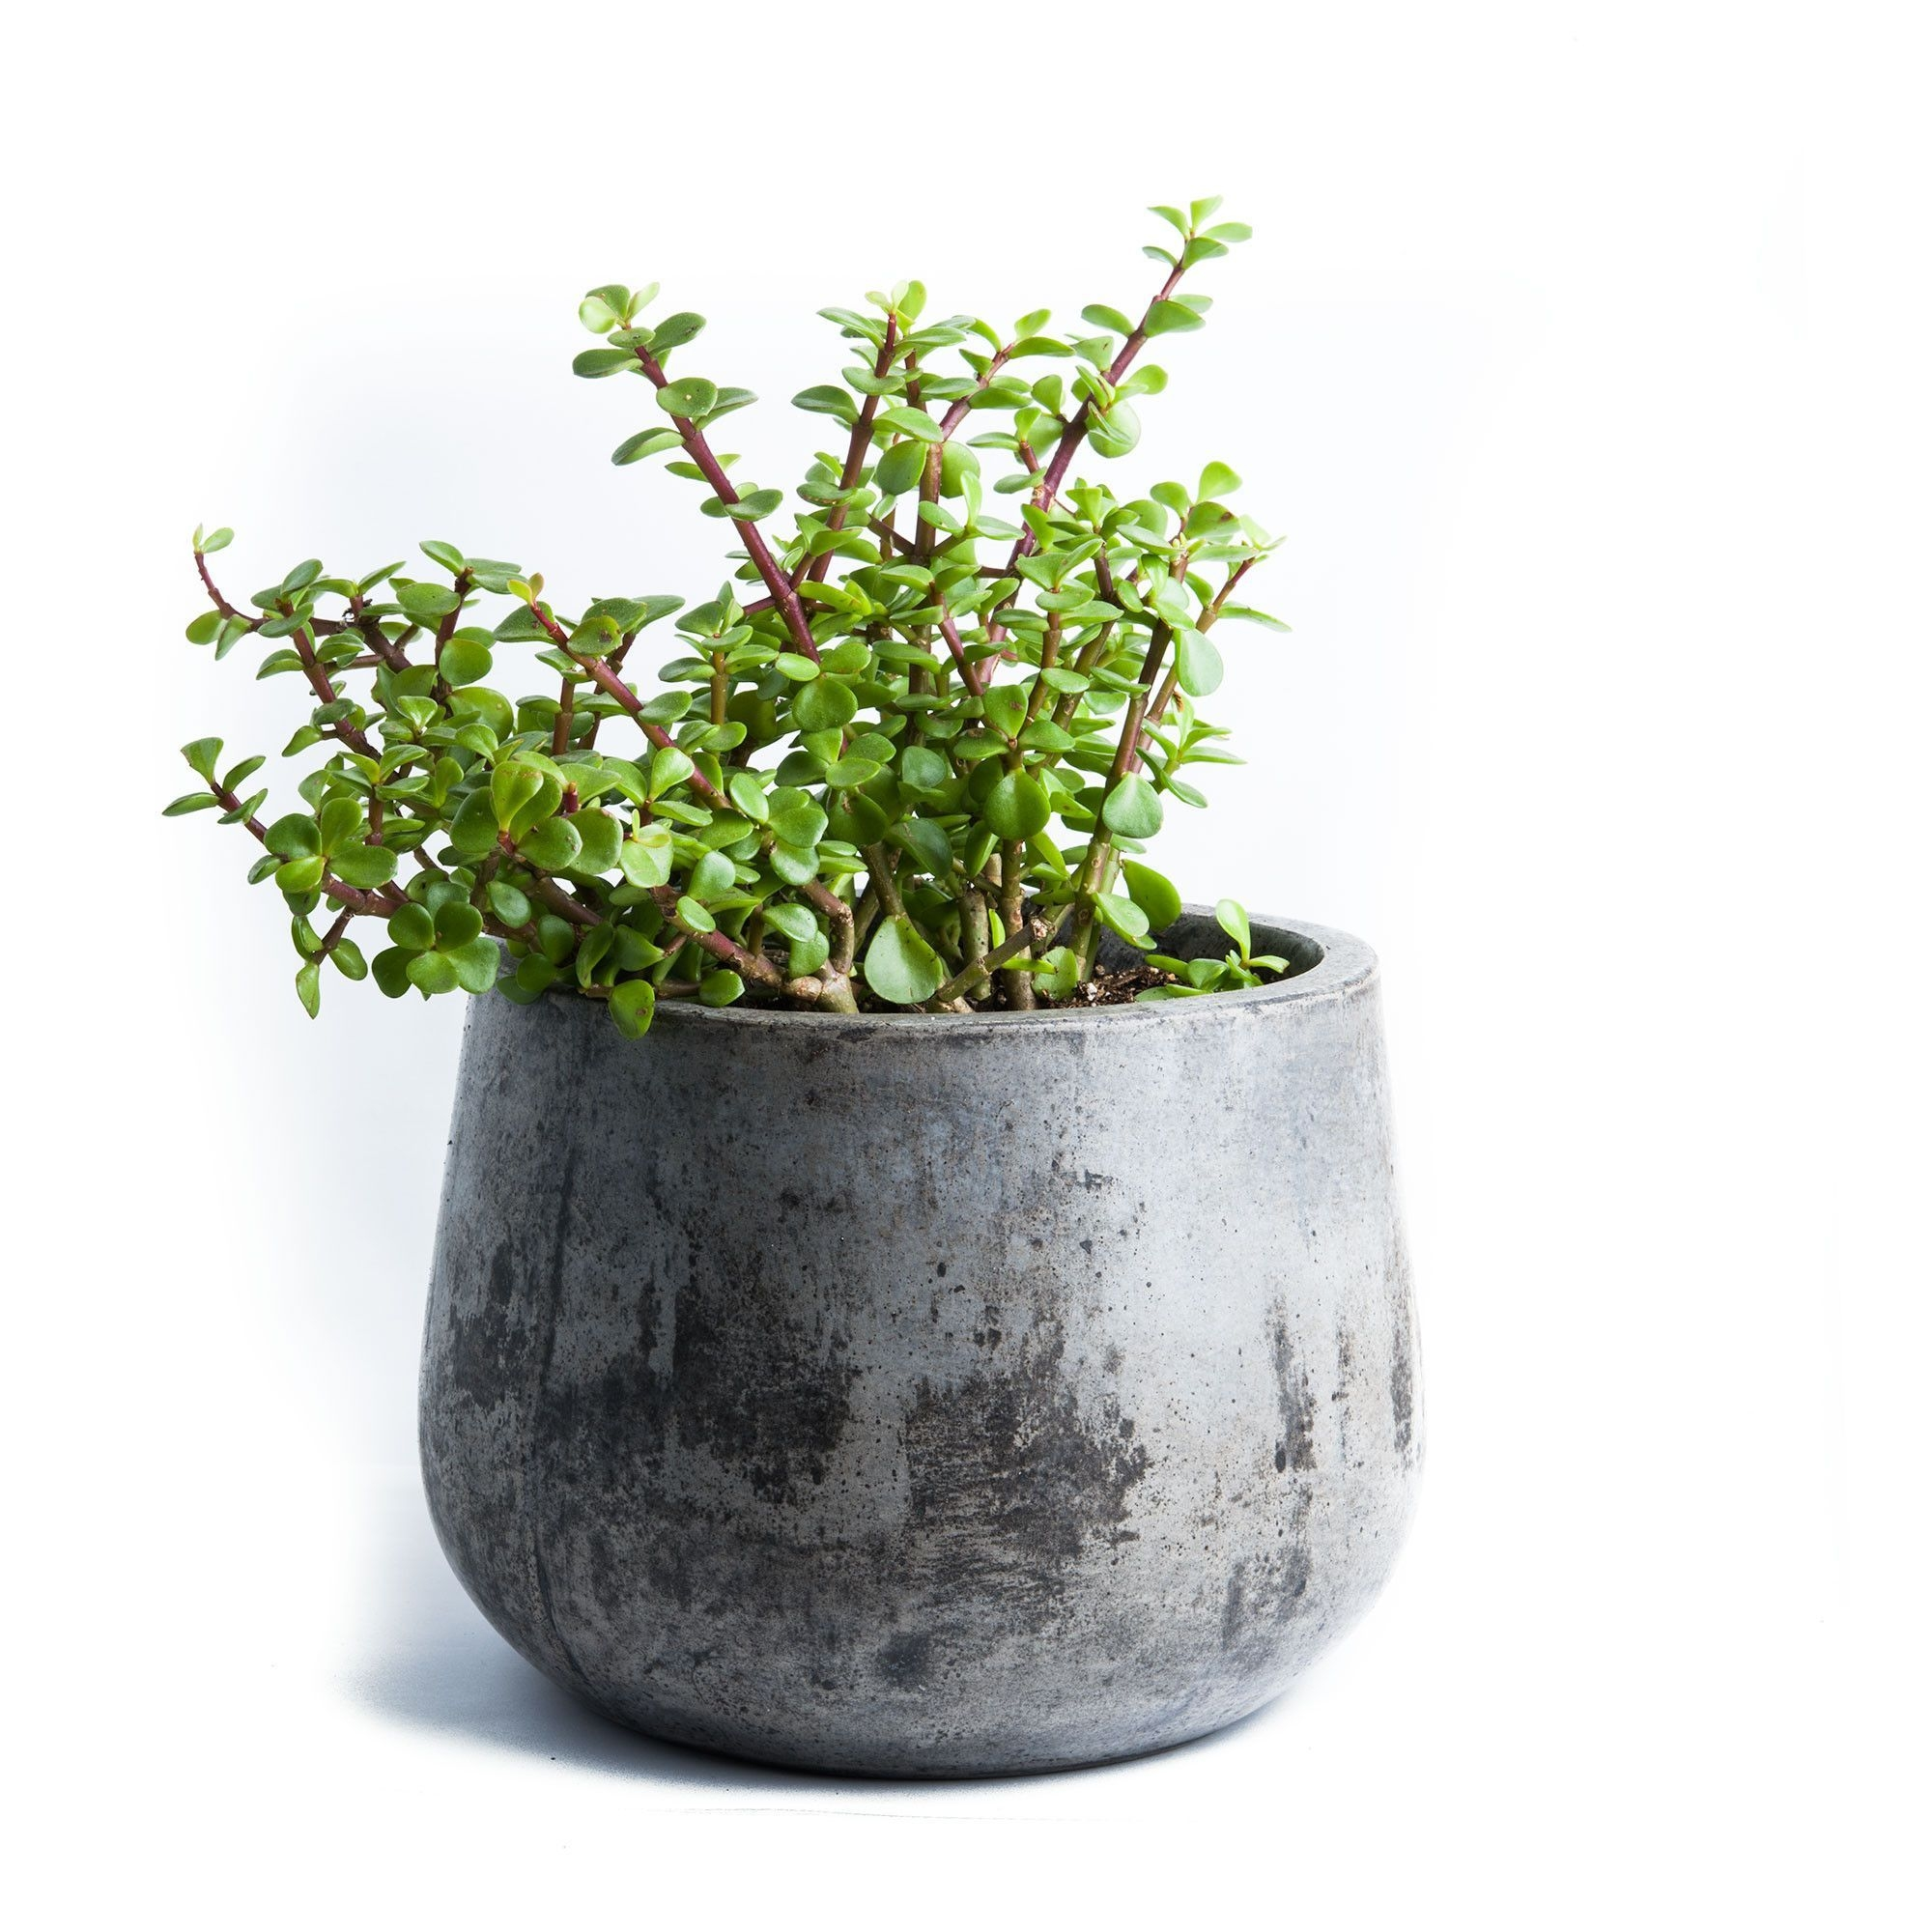 Sama is a simple Pod Shaped planter cast of cement and